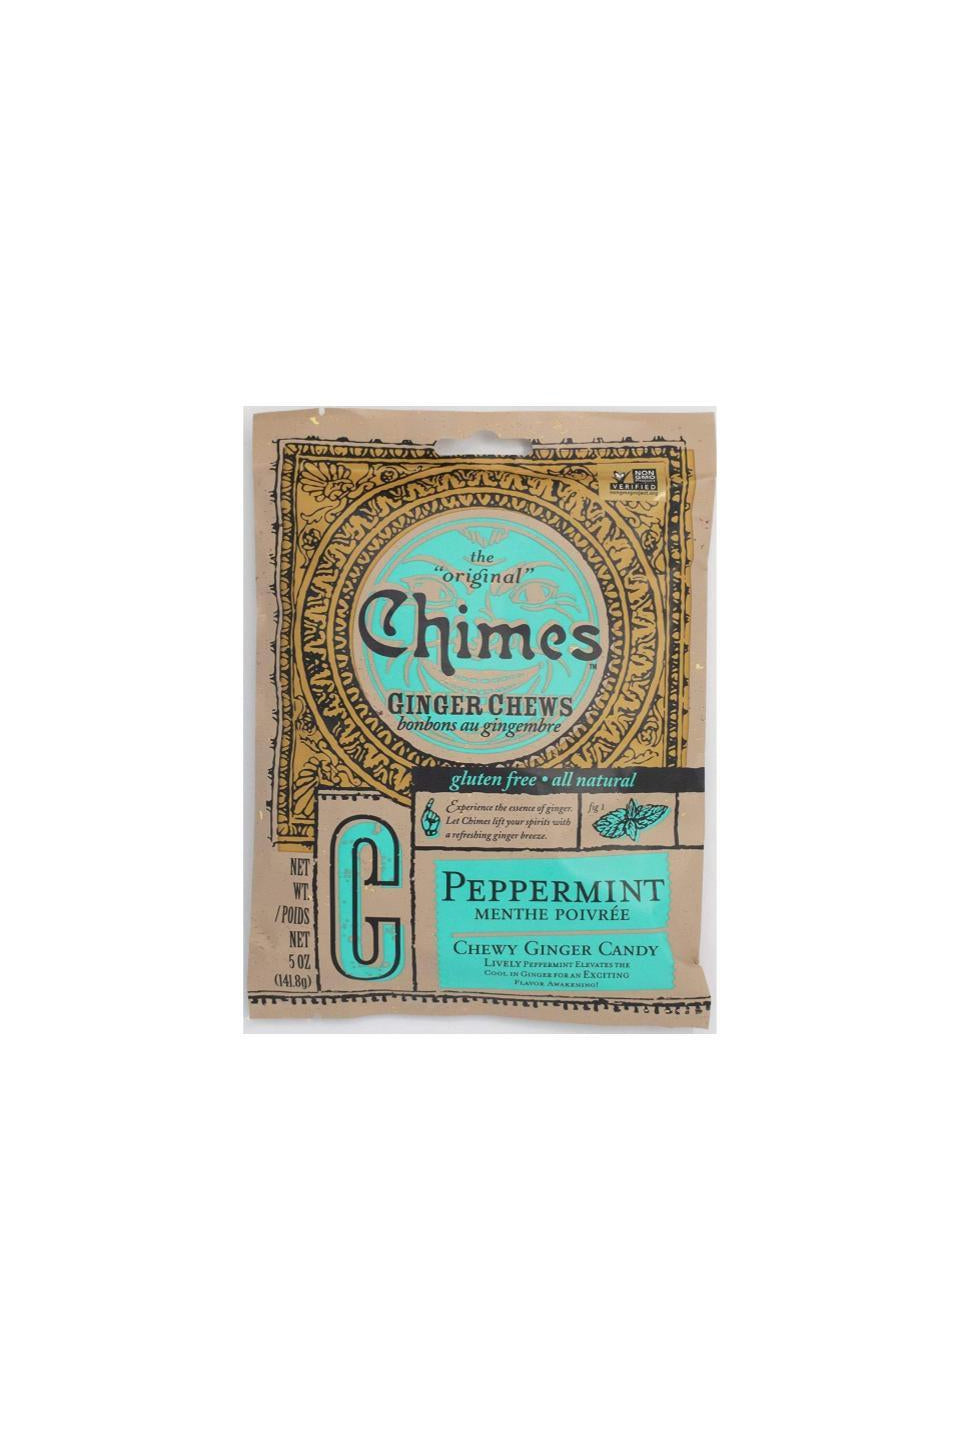 Chimes Peppermint Ginger Chews 141.8g